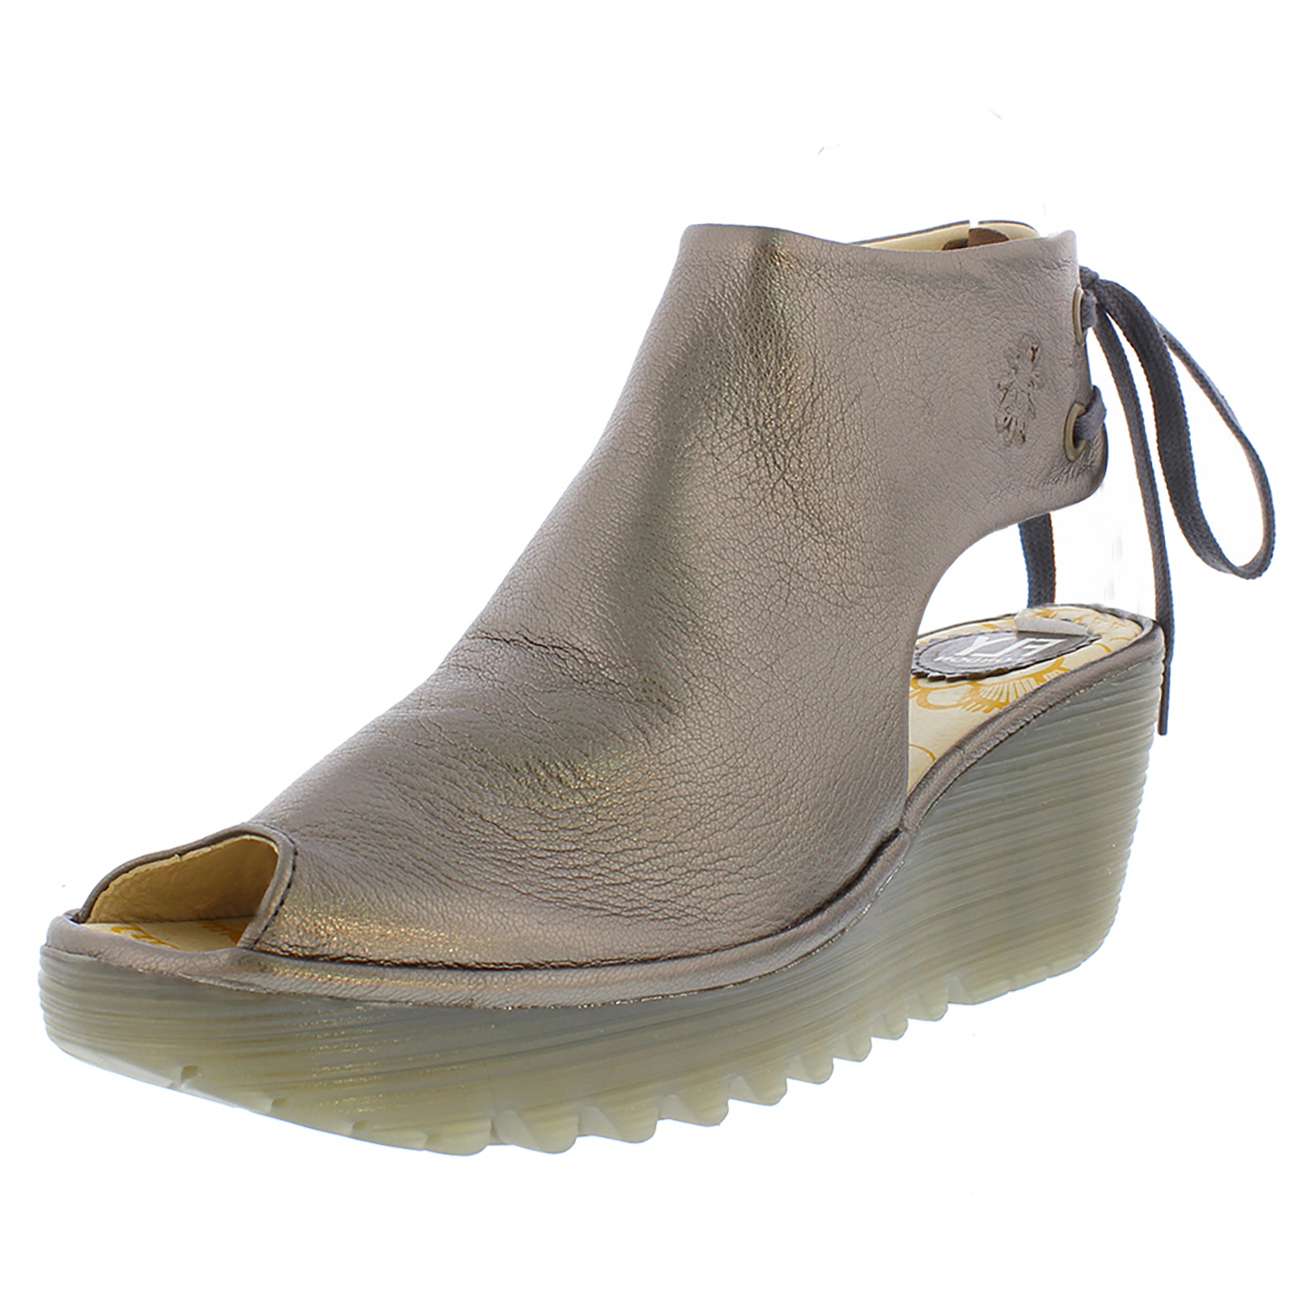 Womens Fly London Yote Leather Open Toe Wedge Heel Cut Out Summer Sandals UK 3-9